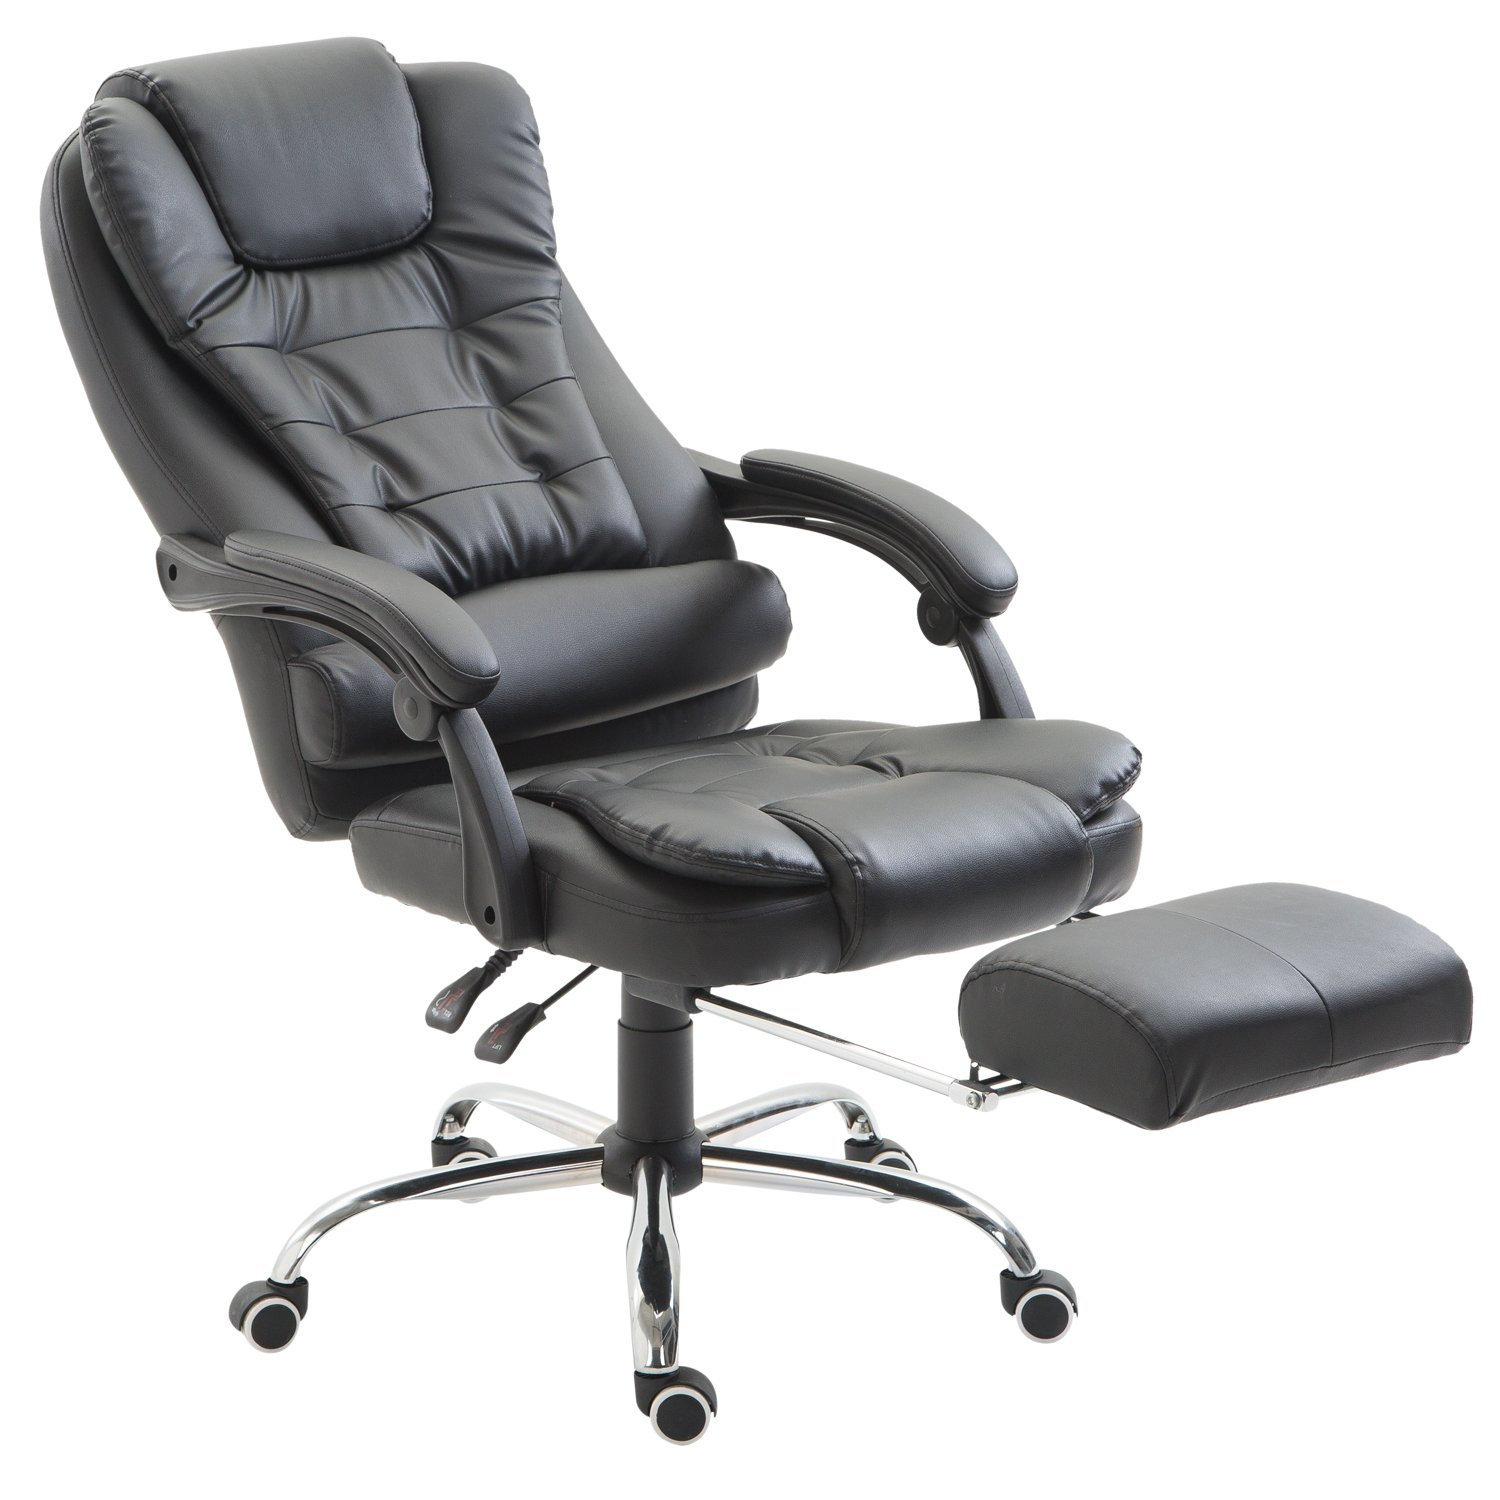 HOMCOM Removable Office Chair Adjustable Swivel Chair With Footrest